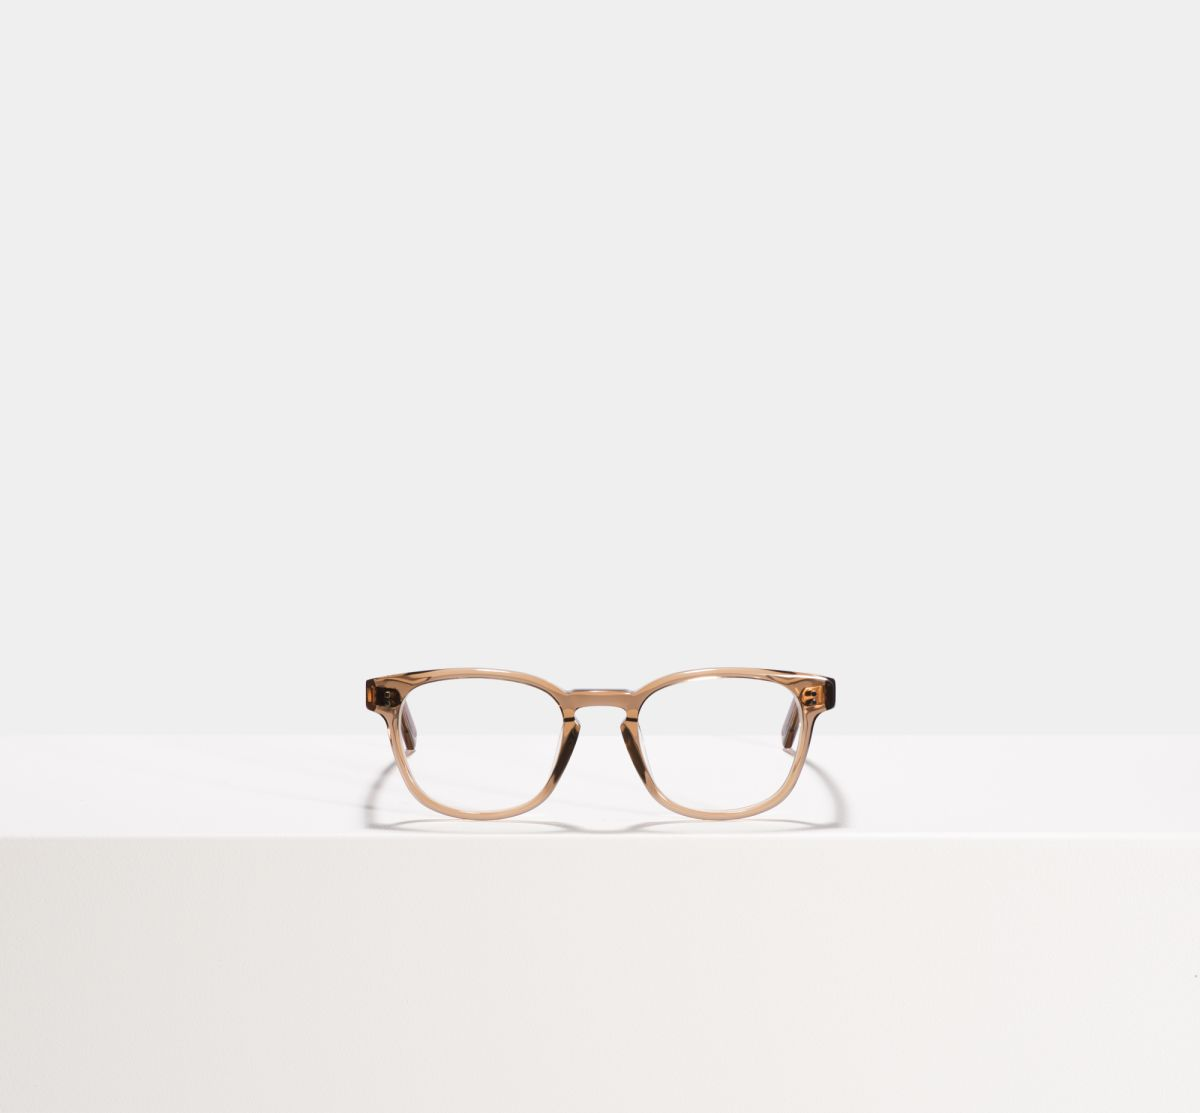 Alfred square acetate glasses in Golden Brown by Ace & Tate